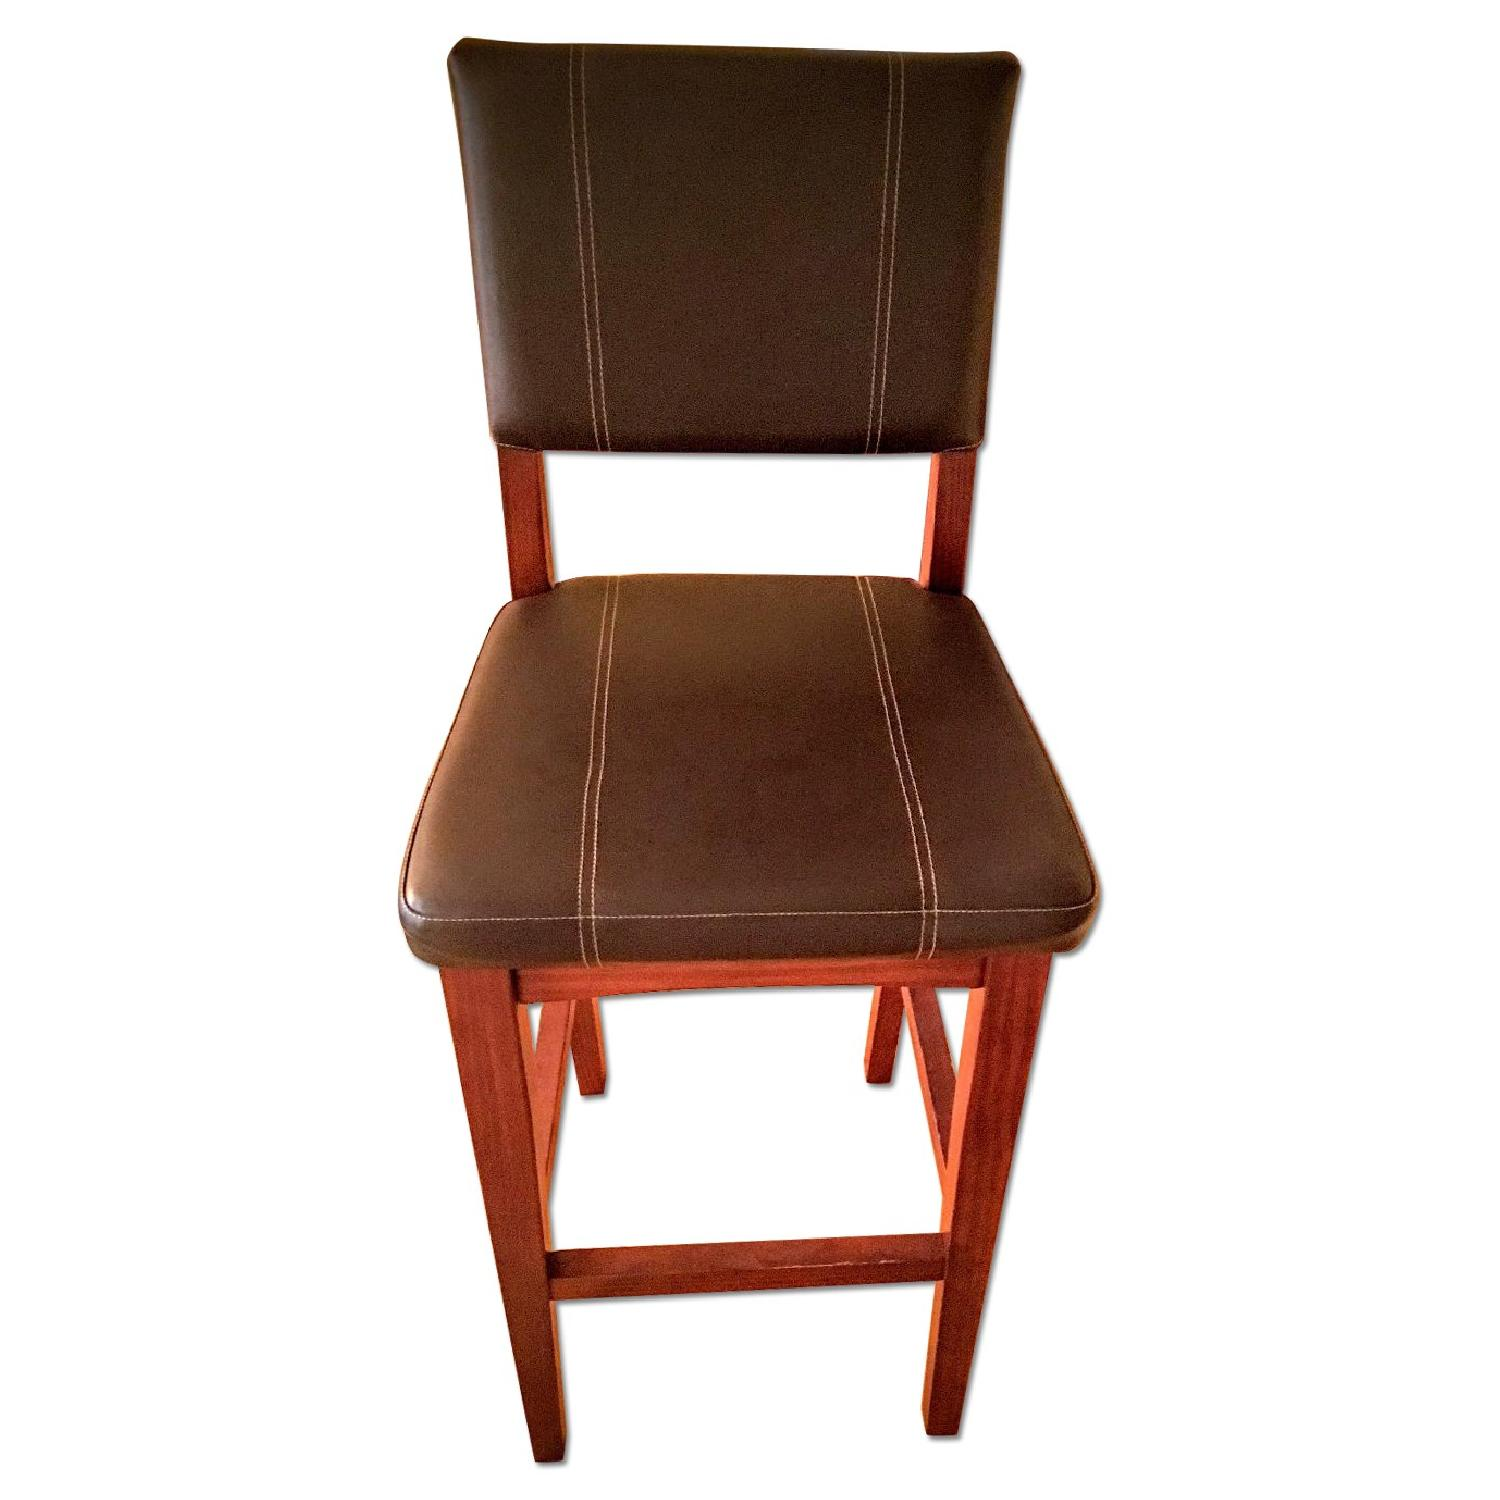 Leather High Bar Stools - image-0